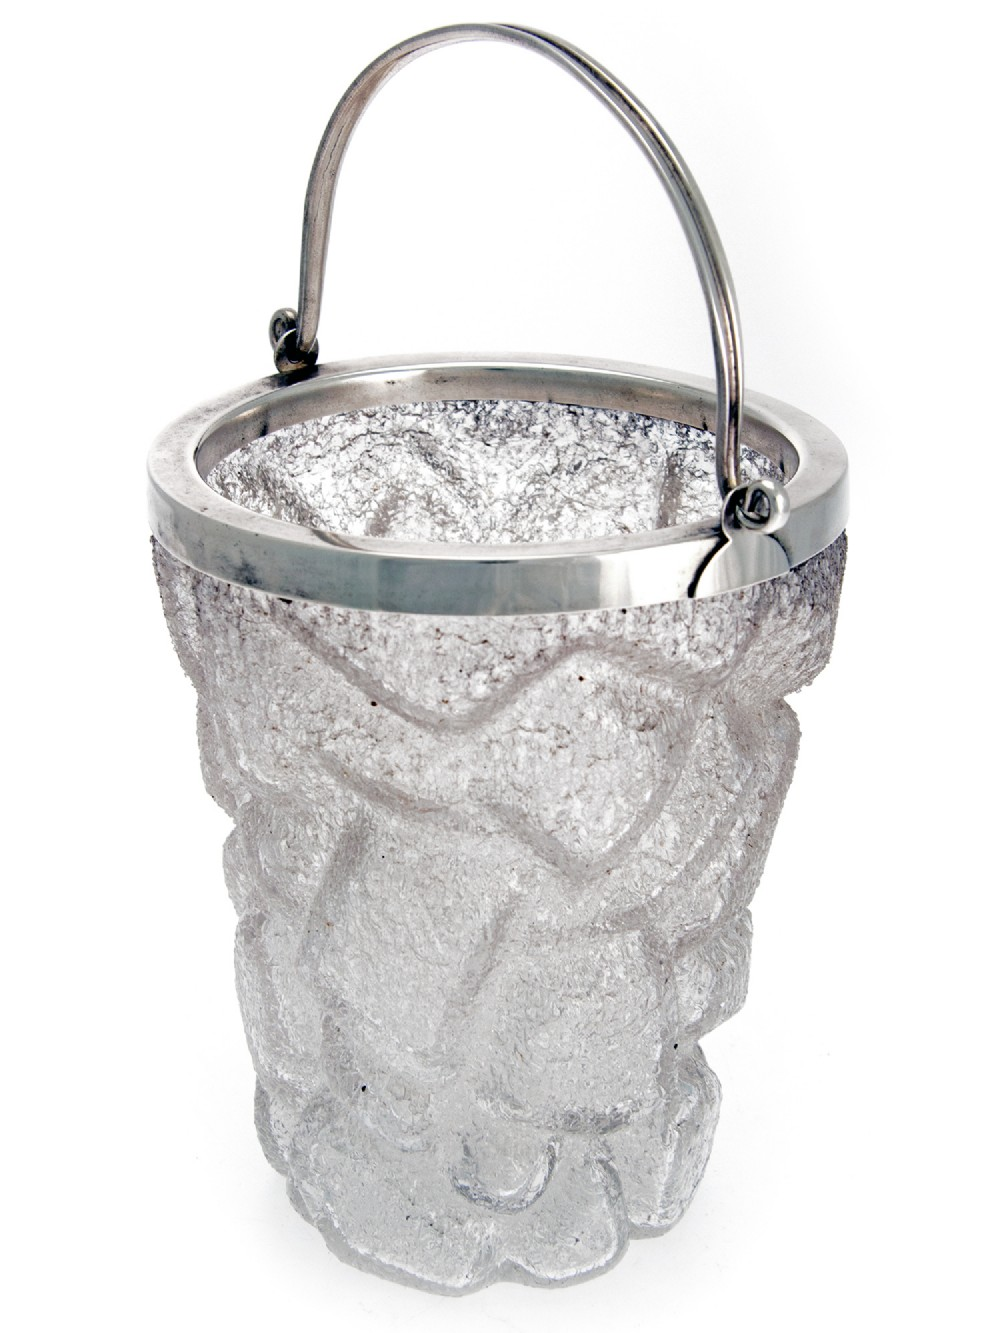 decorative silver plate and ice cube shaped glass ice pail